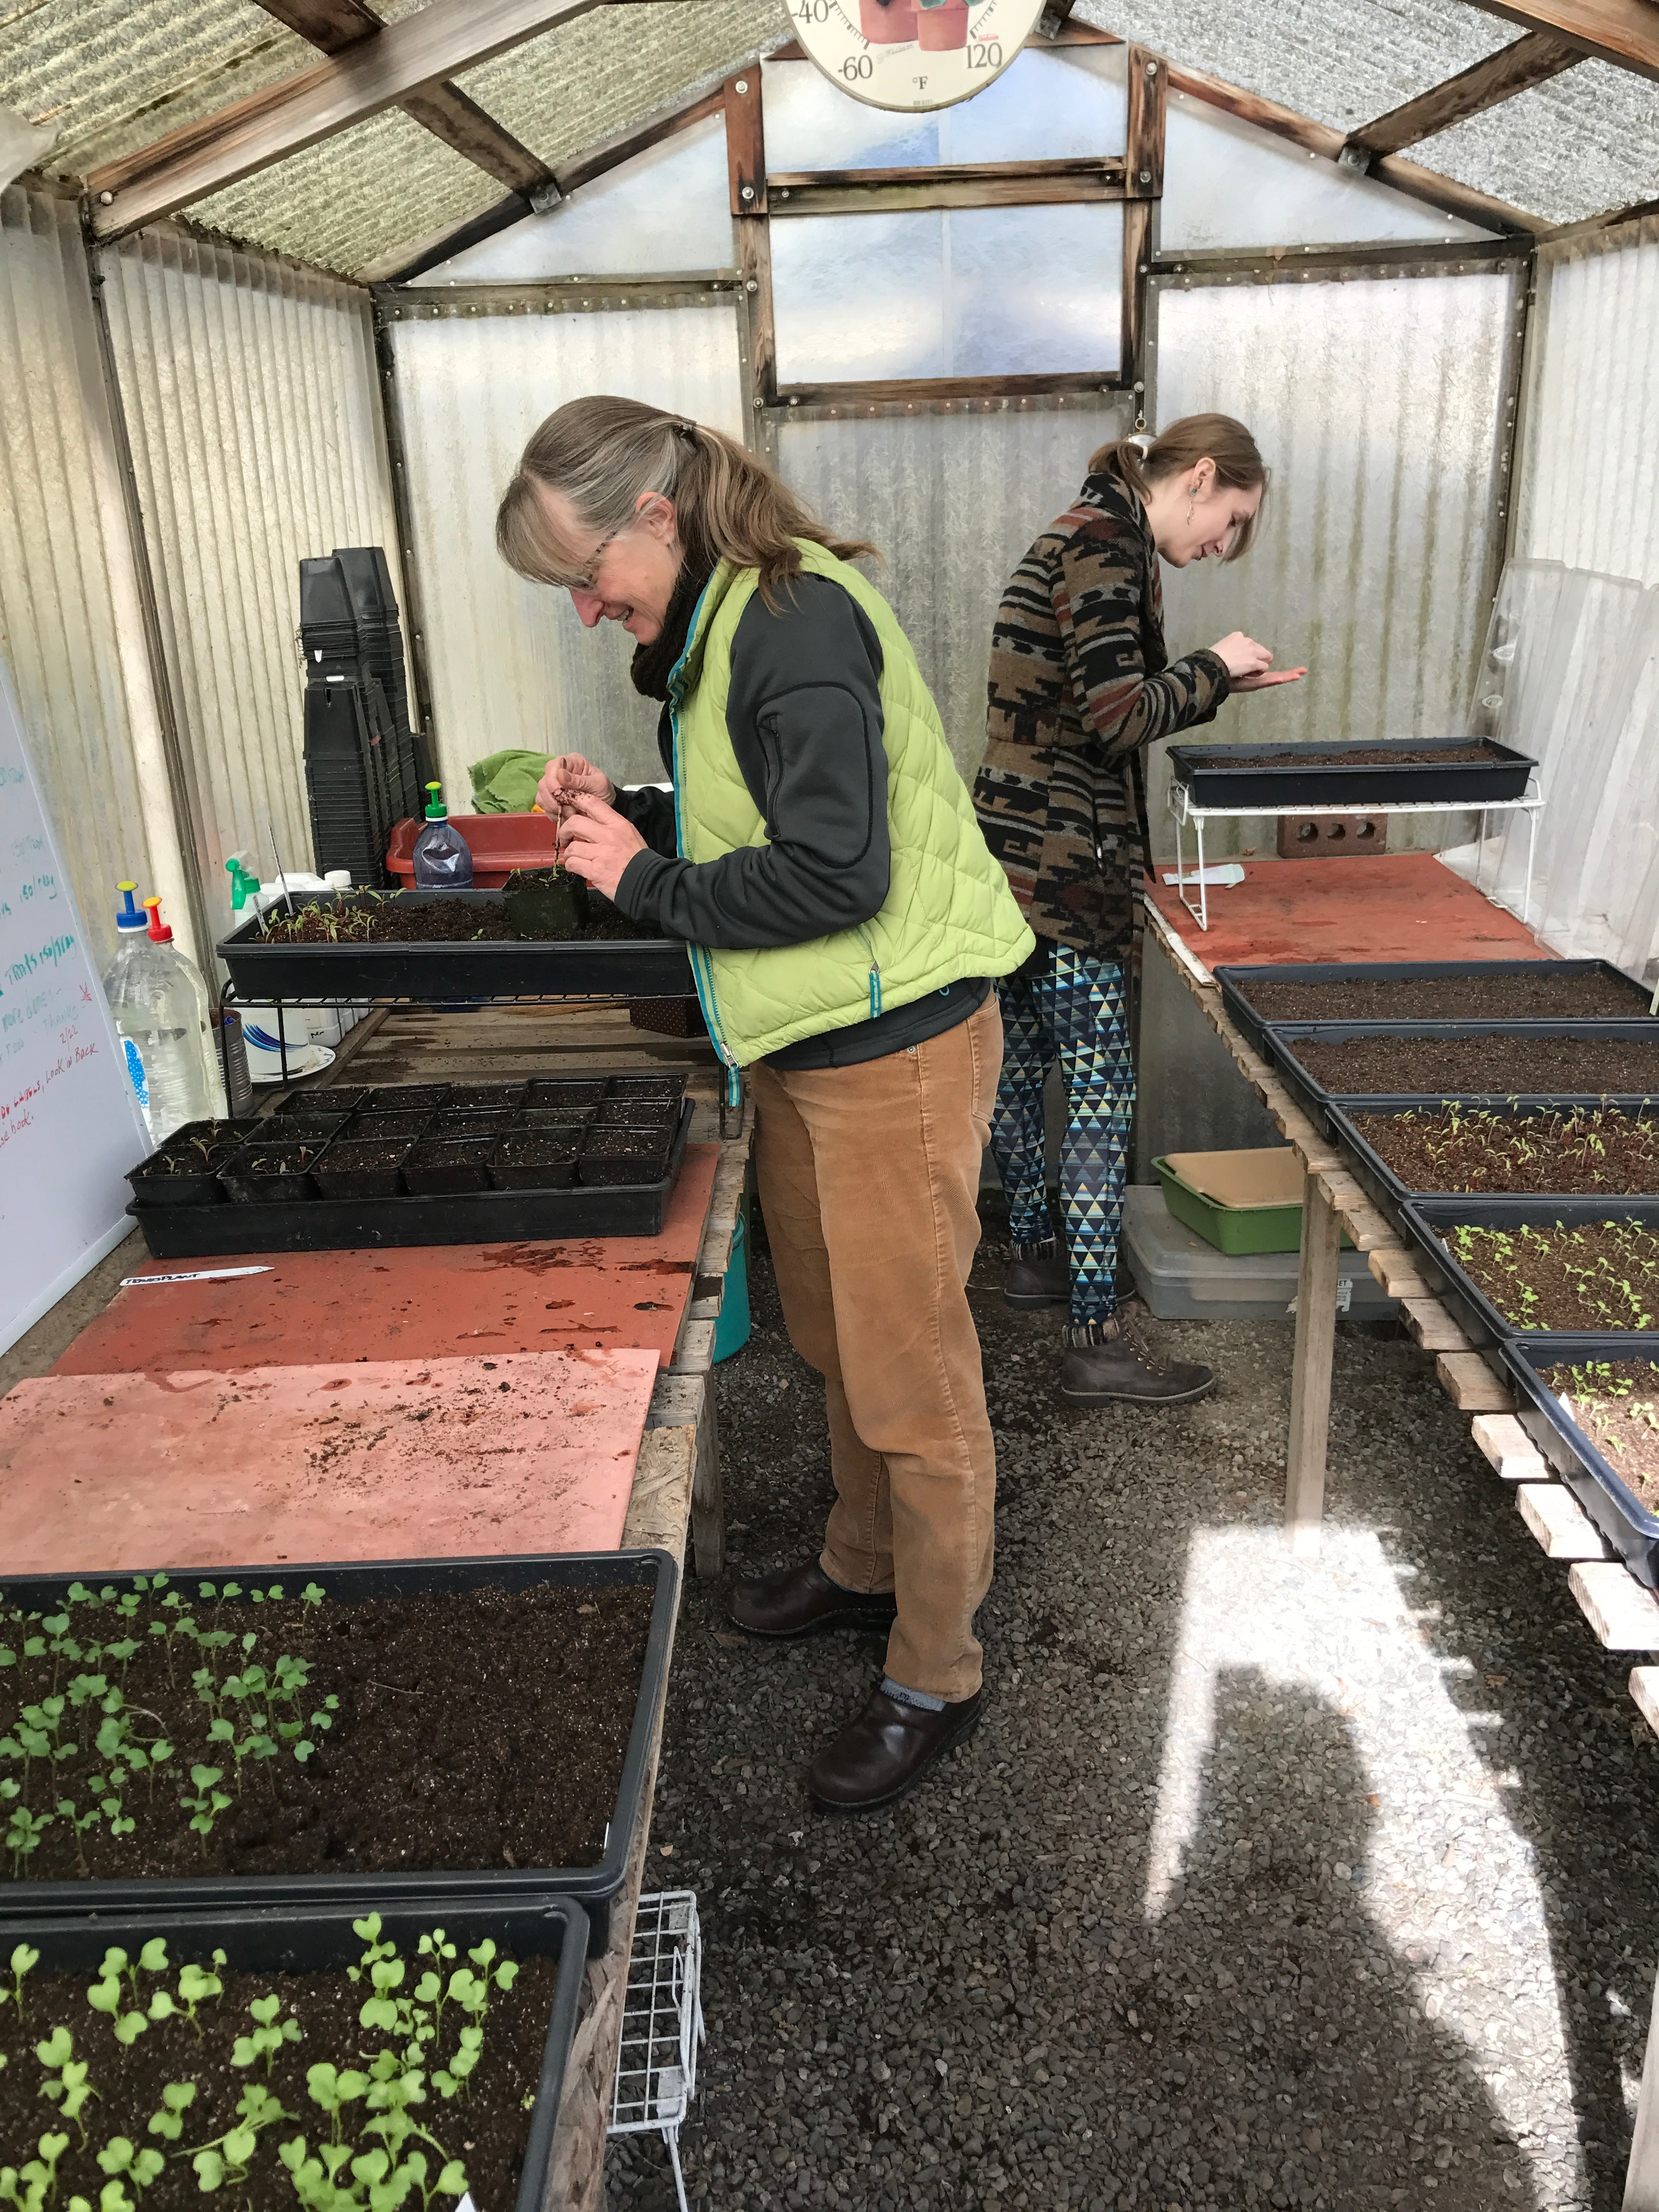 Volunteer Gardeners Plant Vegetable Seeds, Transplant The Sprouts And  Provide The Seattle Giving Gardens With Vegetable Starts.